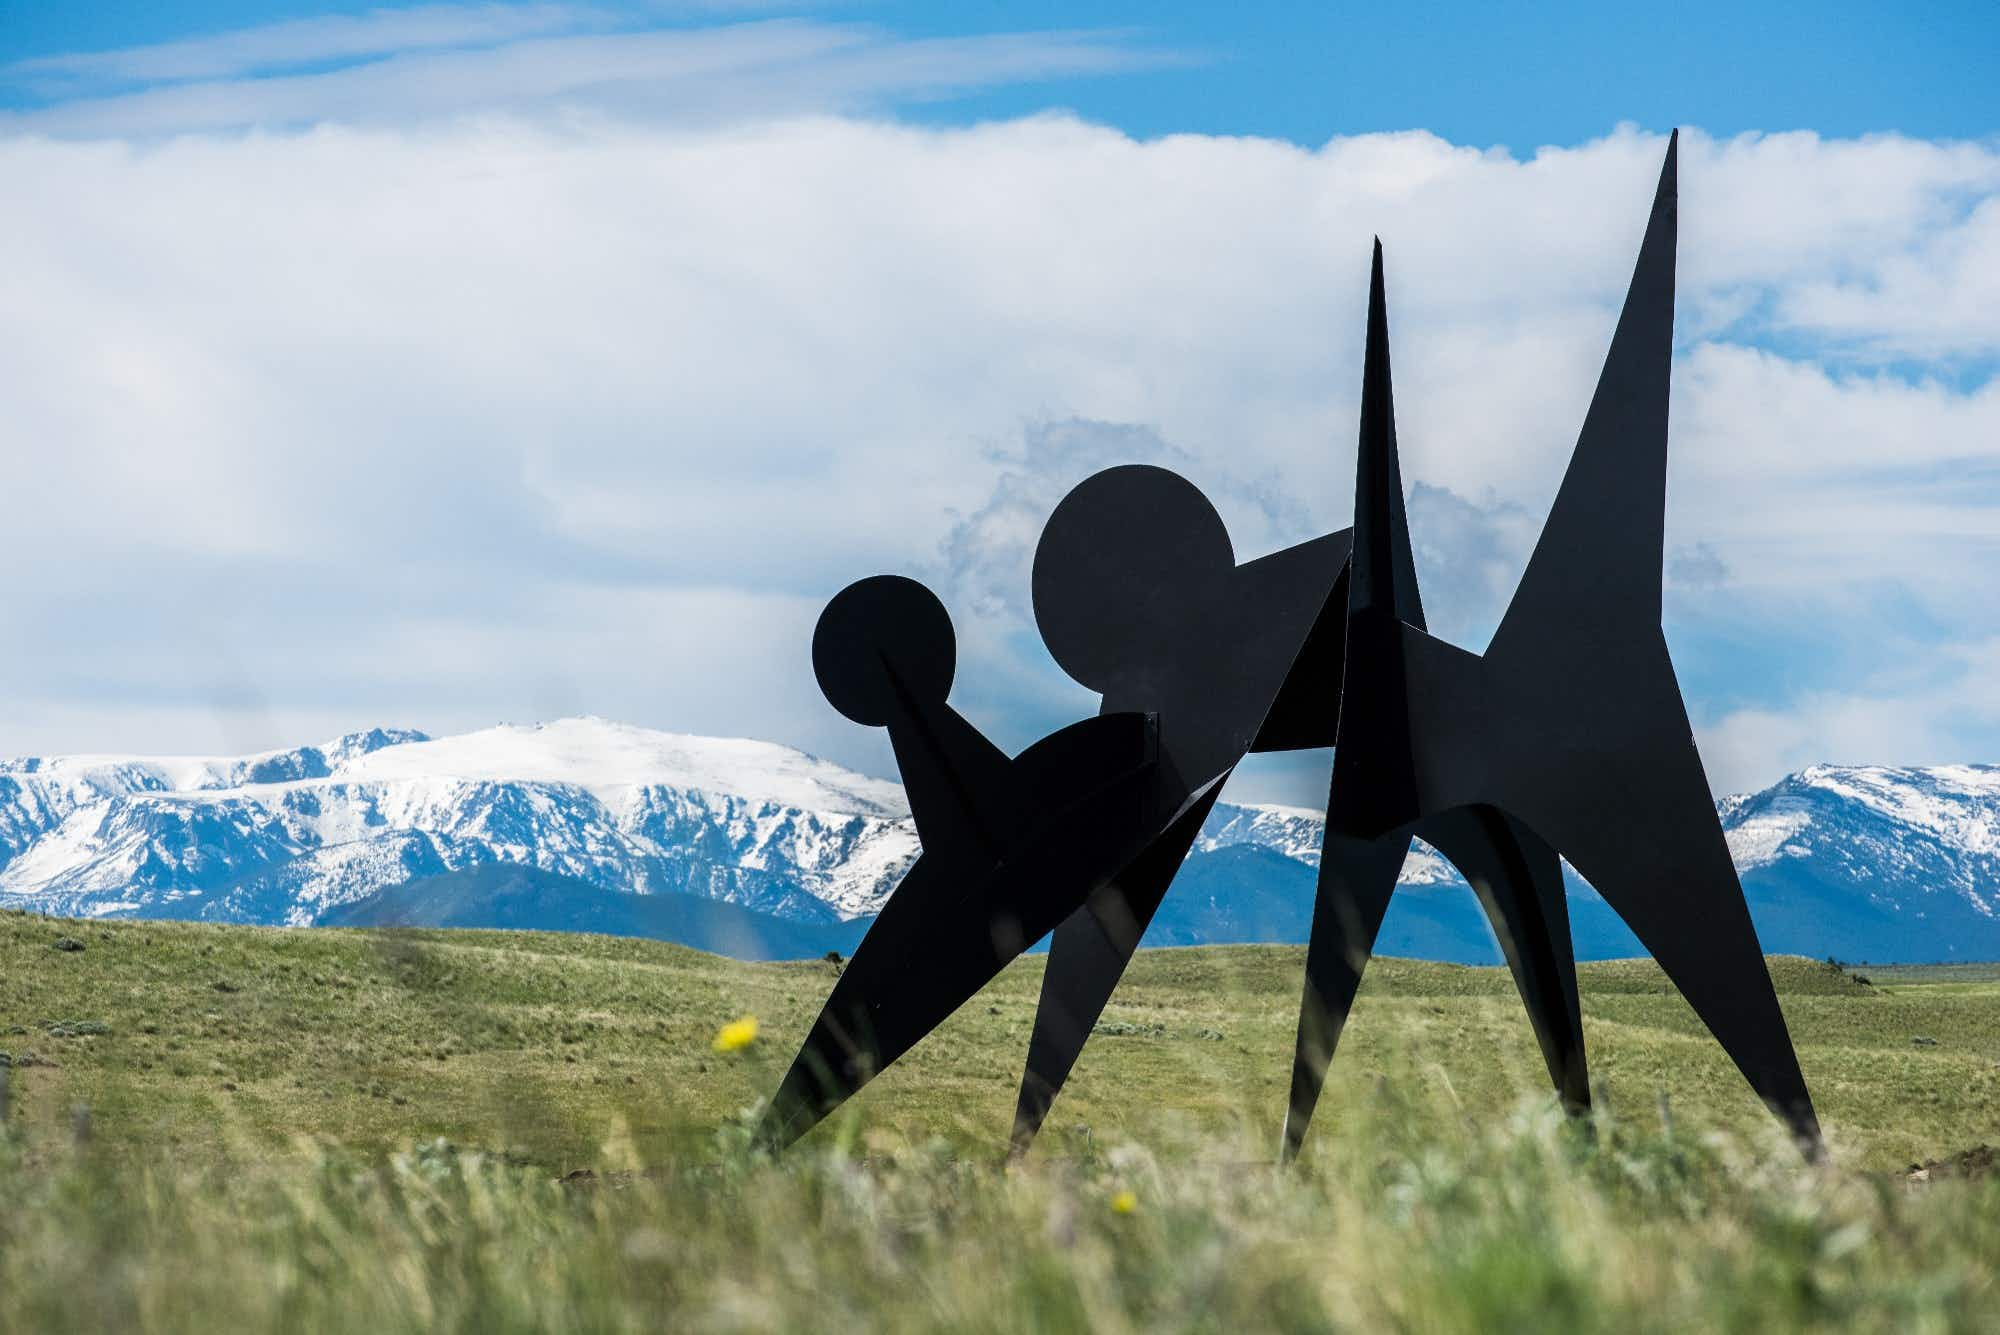 You can explore Montana's epic sculpture park through the pages of a new book